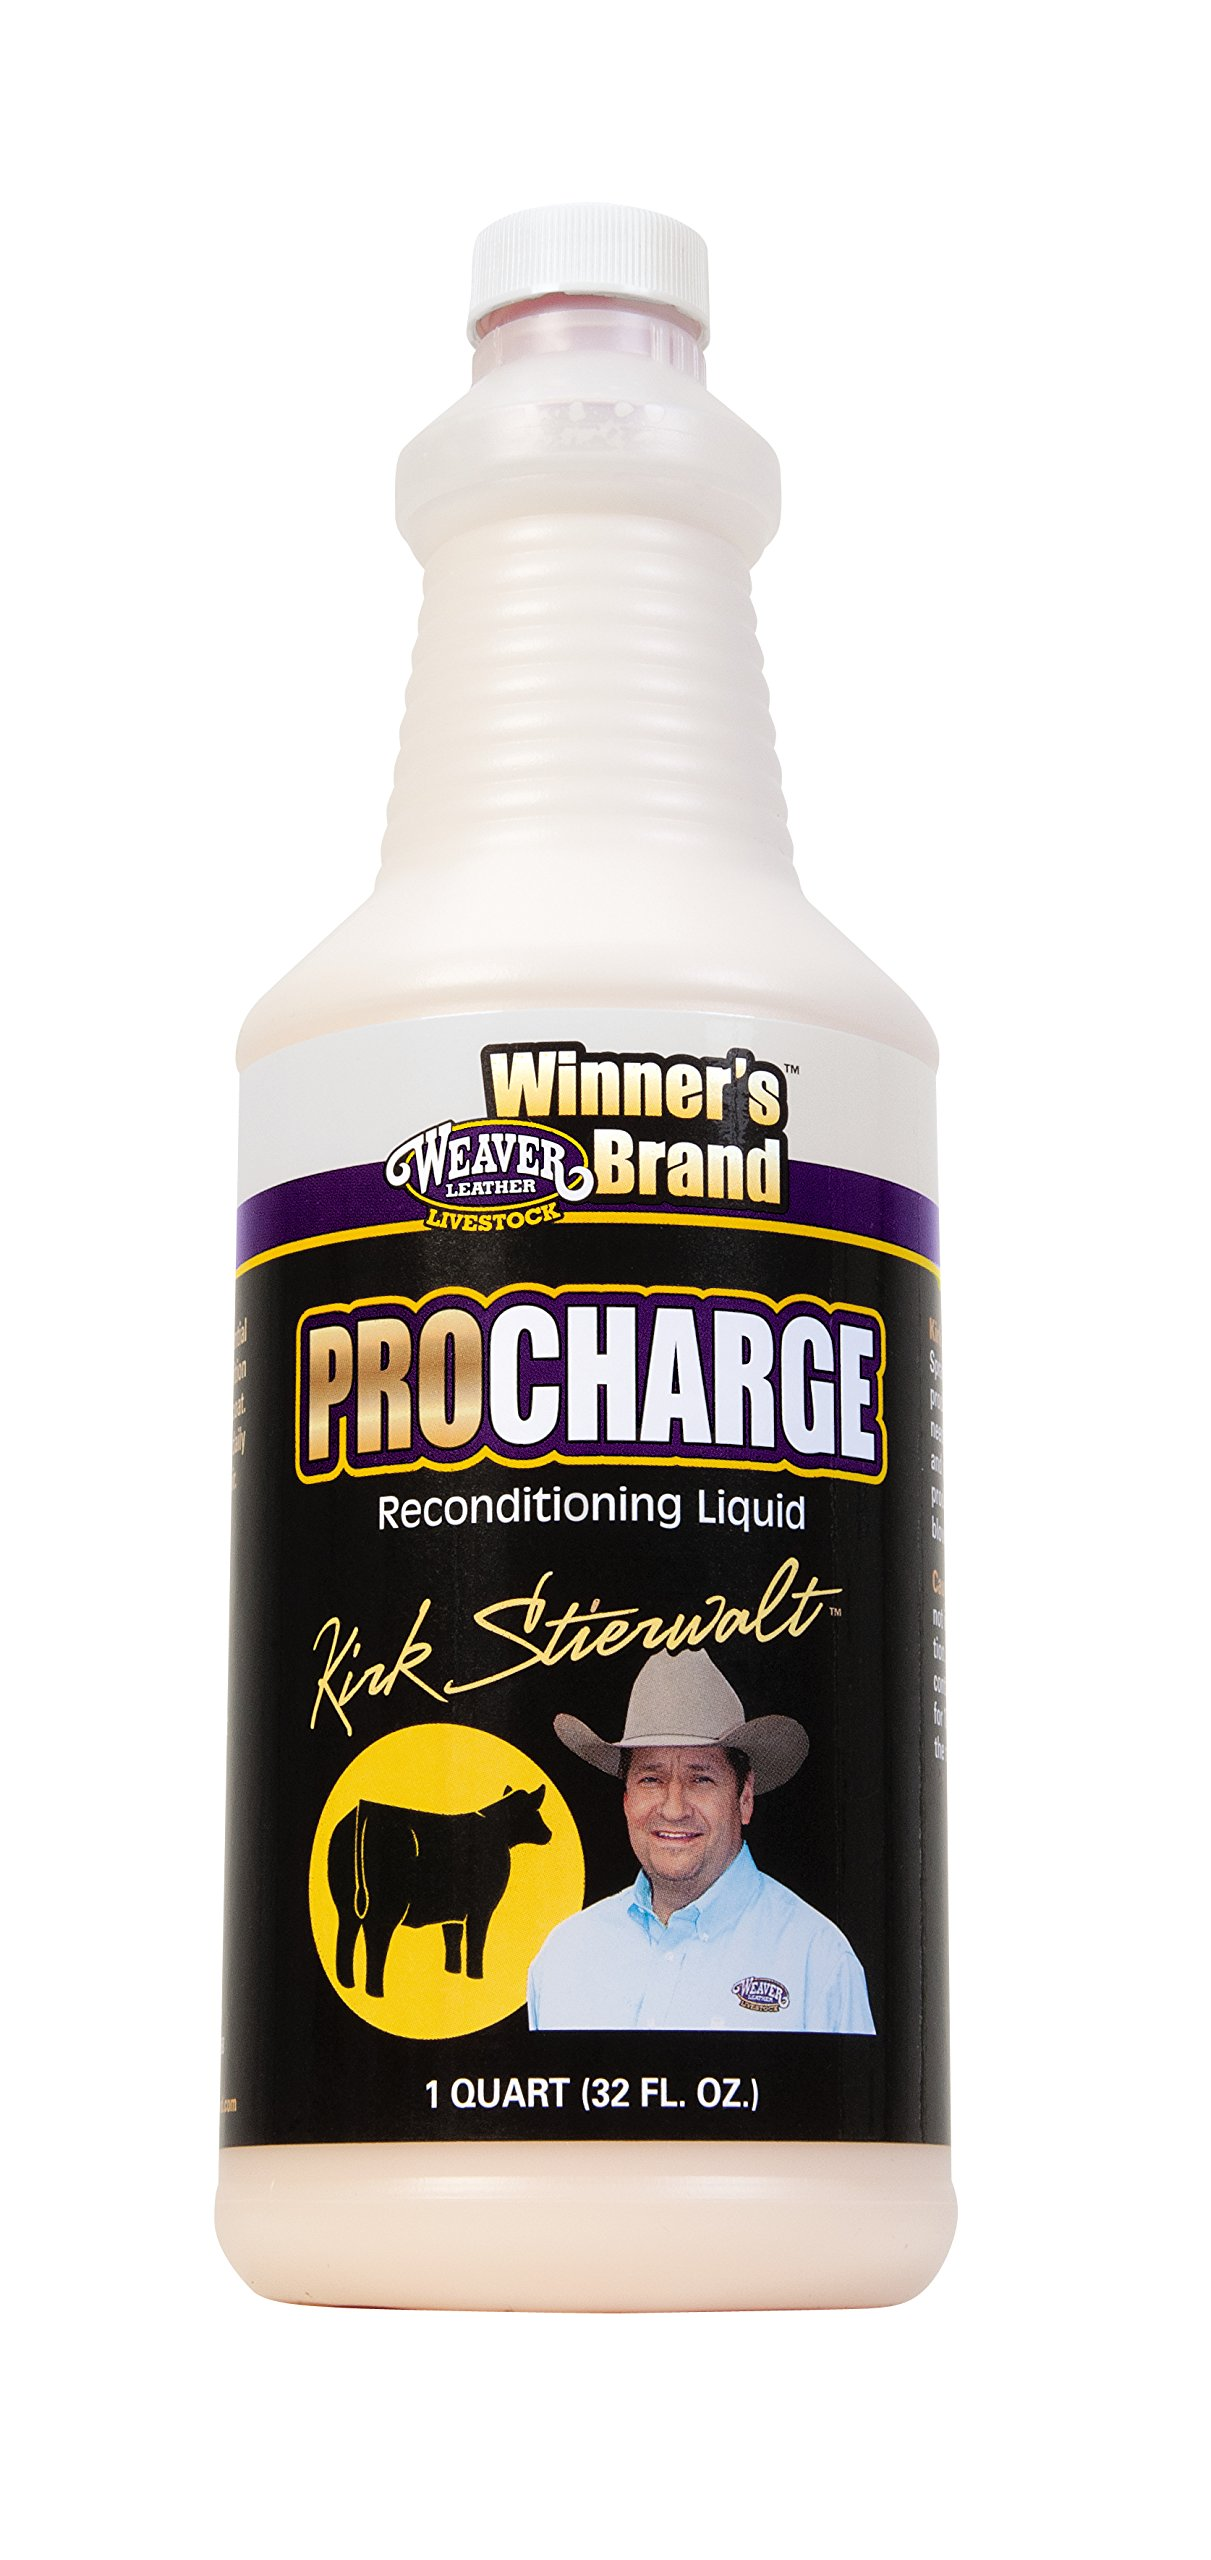 Weaver Leather Livestock Stierwalt ProCharge Reconditioning Liquid by Weaver Leather